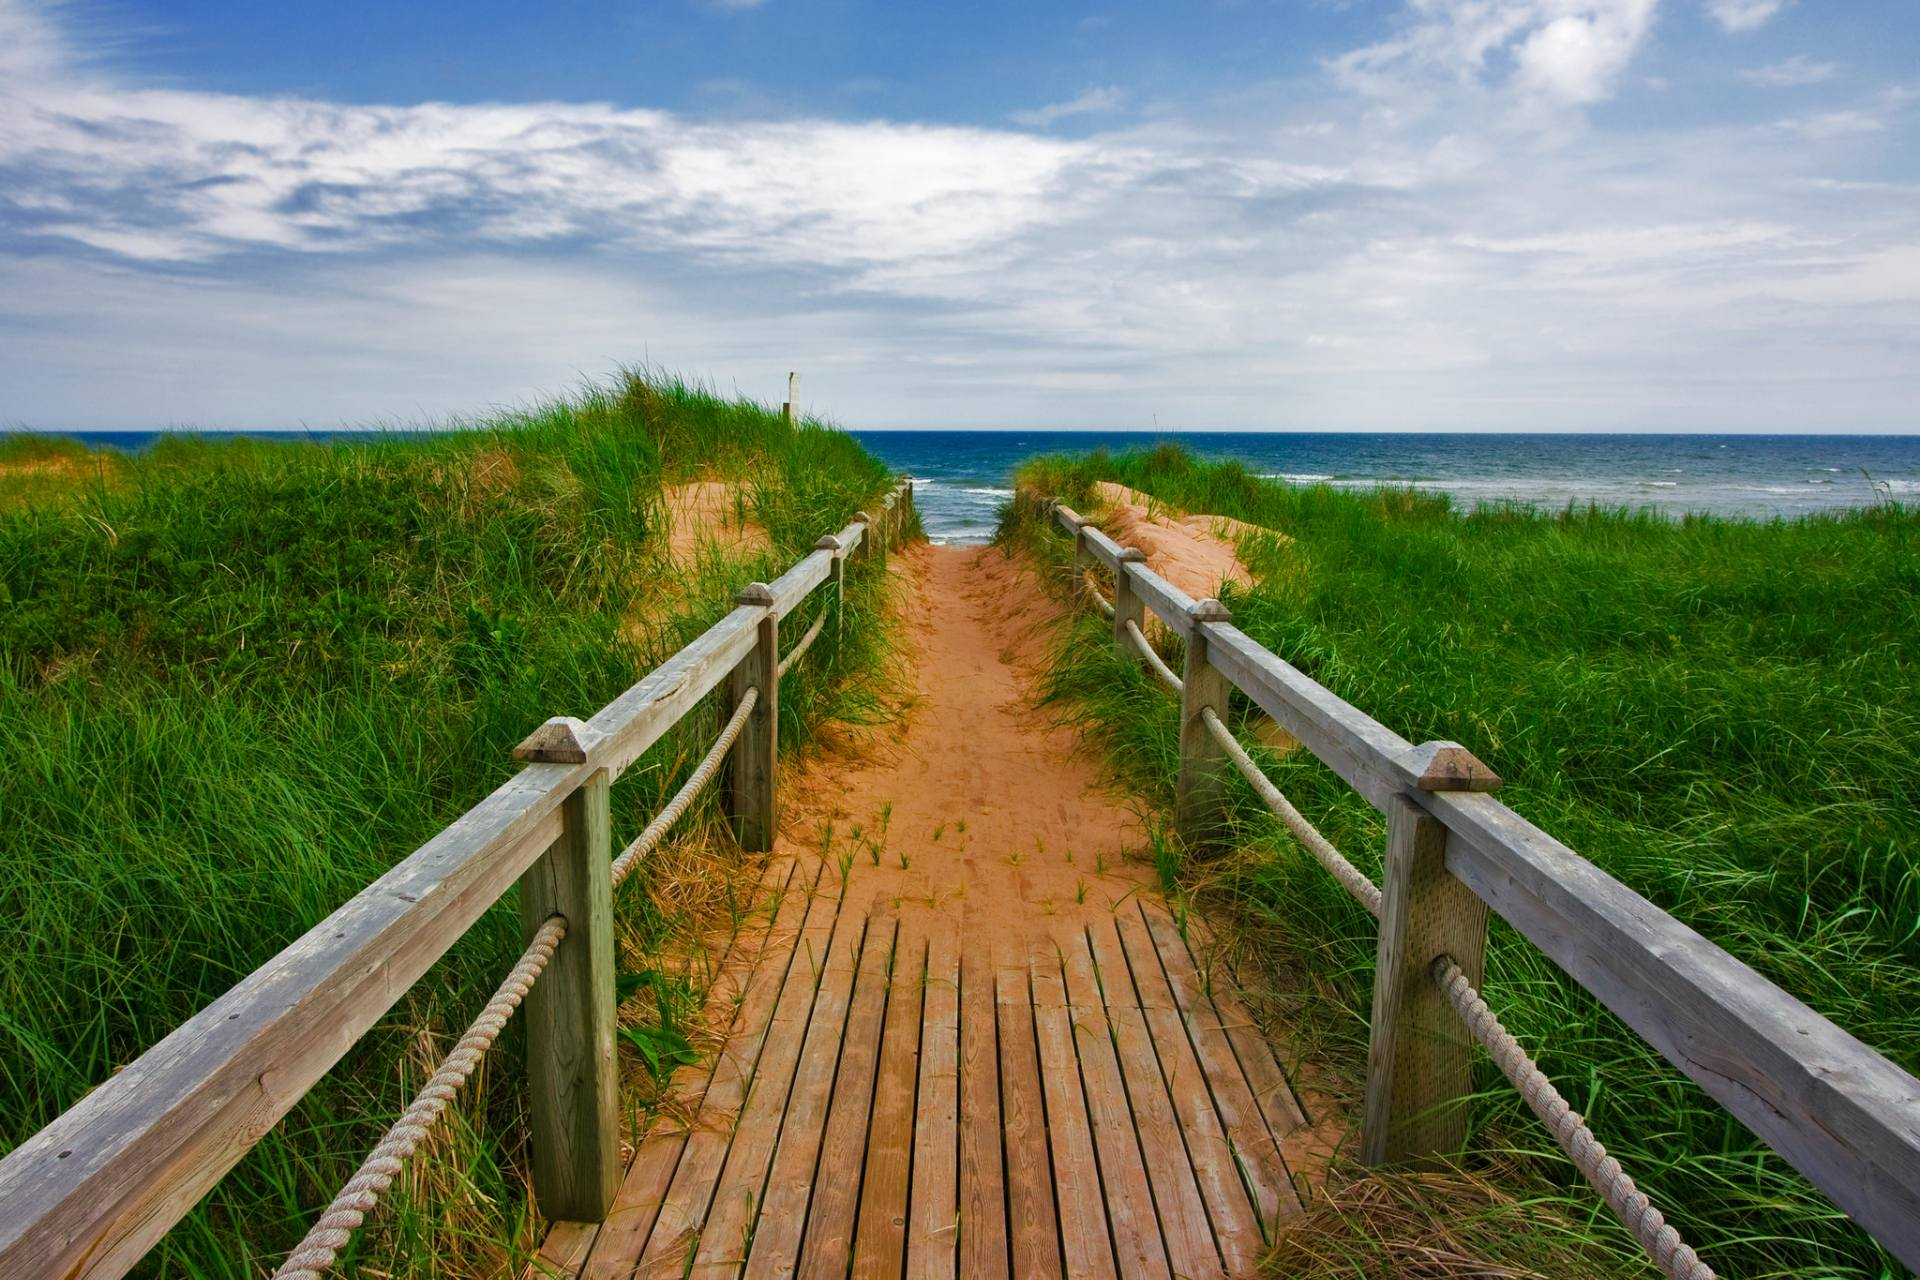 Saatchi Art: PEI Beach Boardwalk - Basin Head - Limited Edition 1 of ...